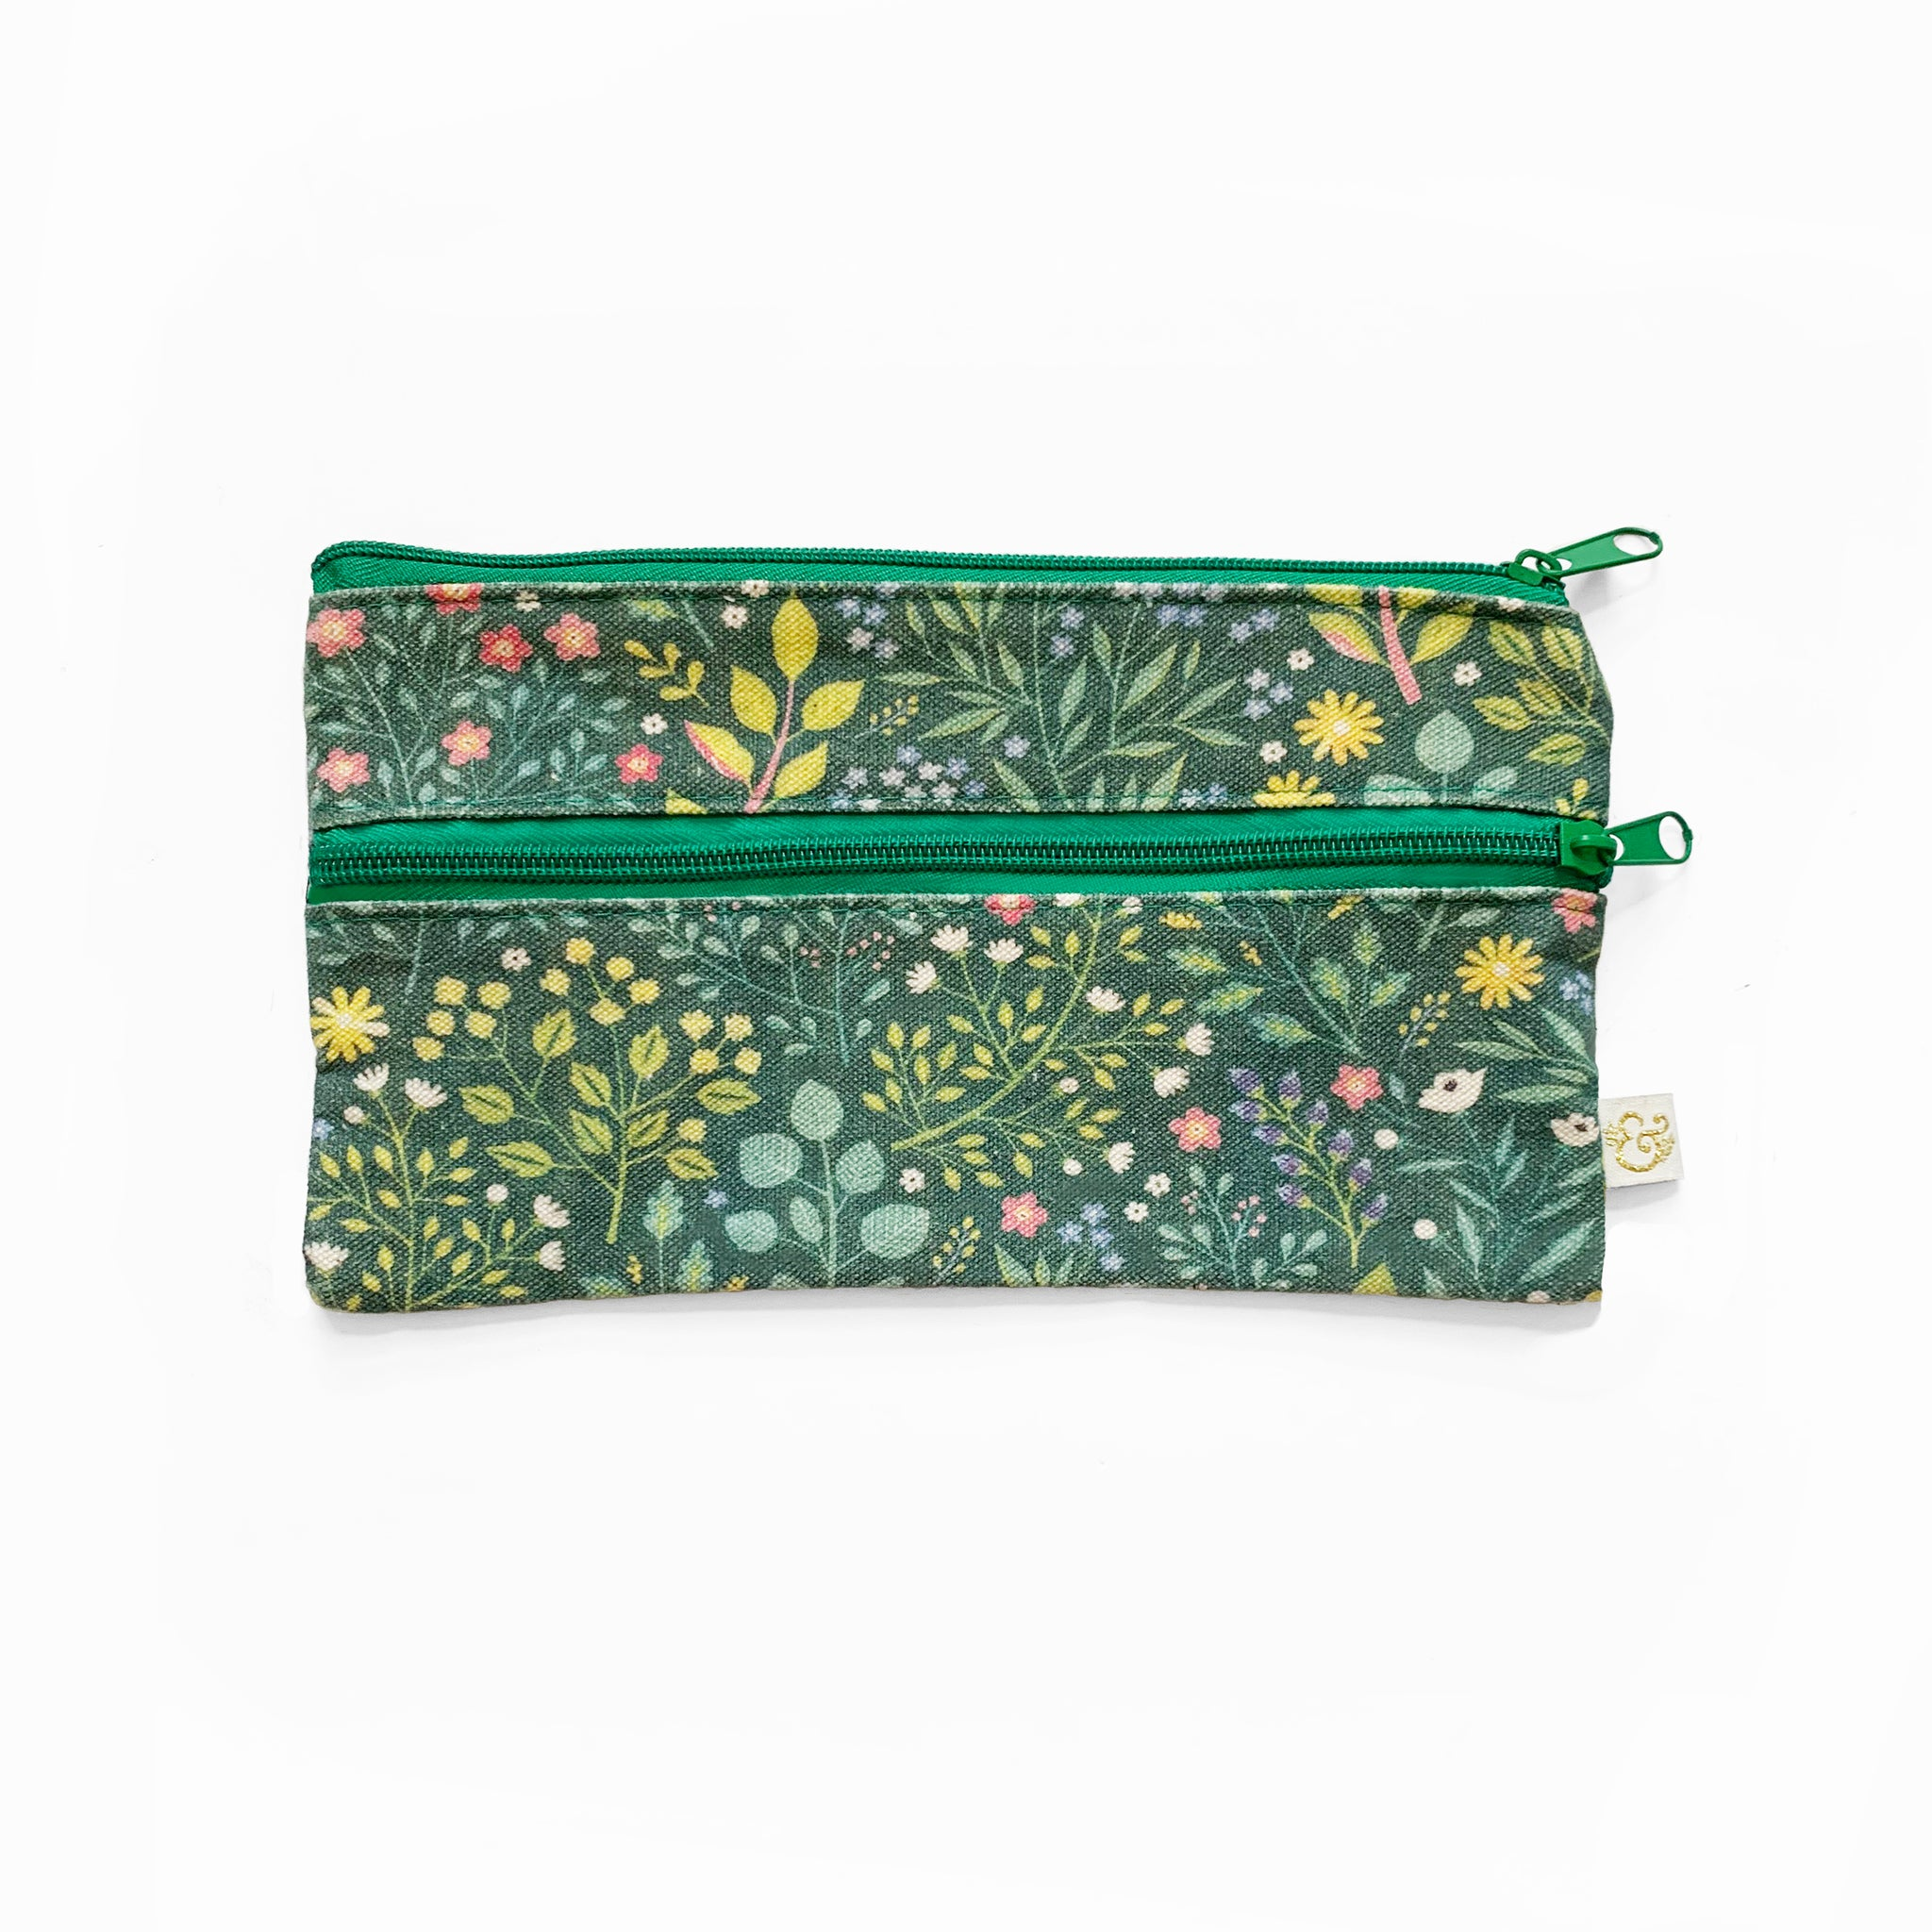 Verdant Ventures Pencil Pouch Attaches to Journal